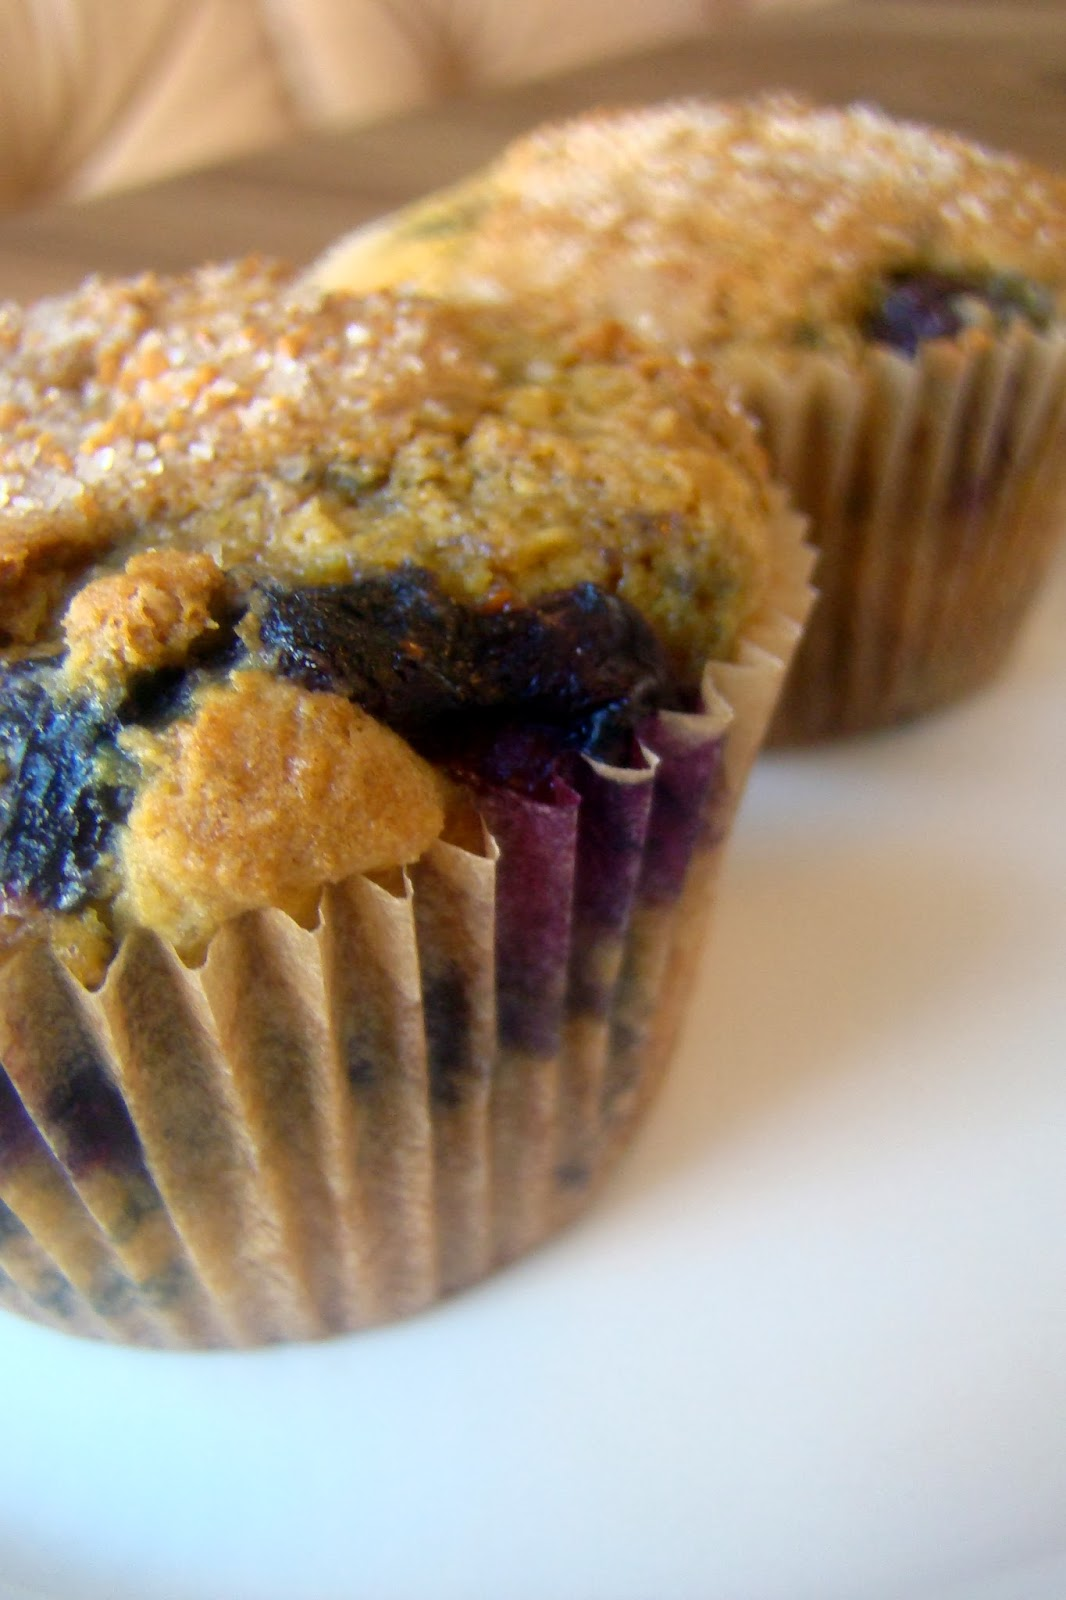 ... : Blueberry Muffins Dusted with Cinnamon Sugar (nutrient-dense